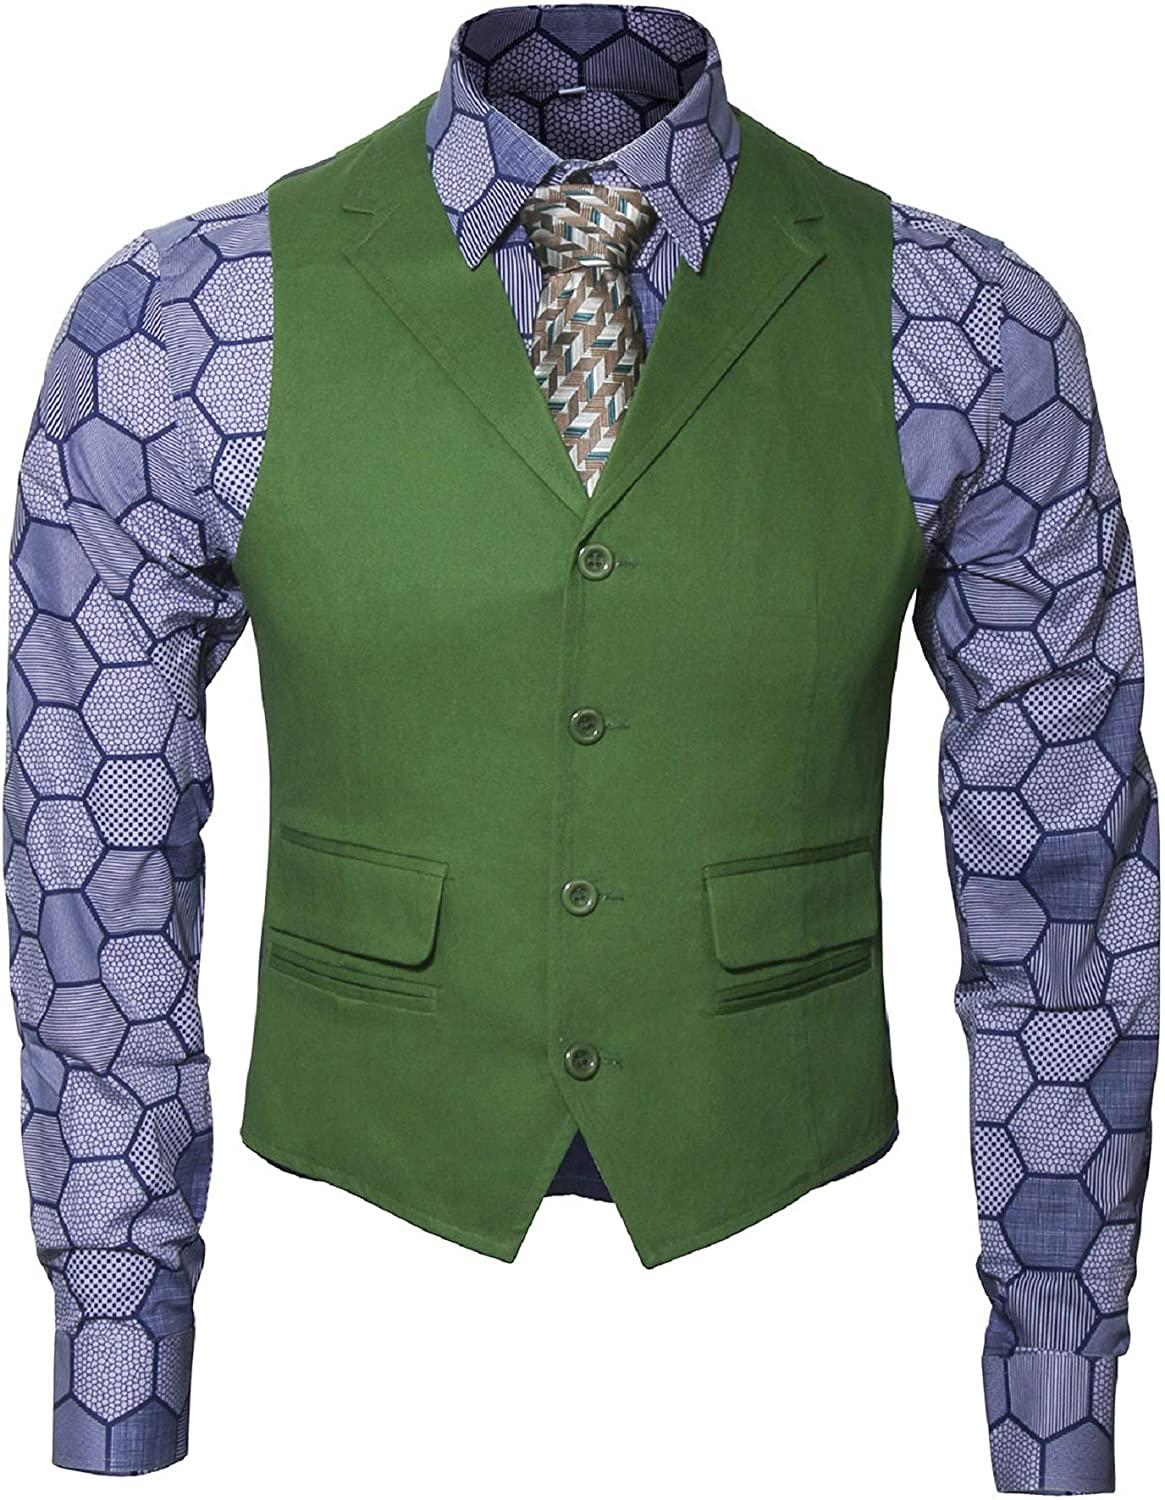 Max 85% OFF Adult Mens Knight Clown Costume Shirt All stores are sold F Suit Tie Set Vest Outfit